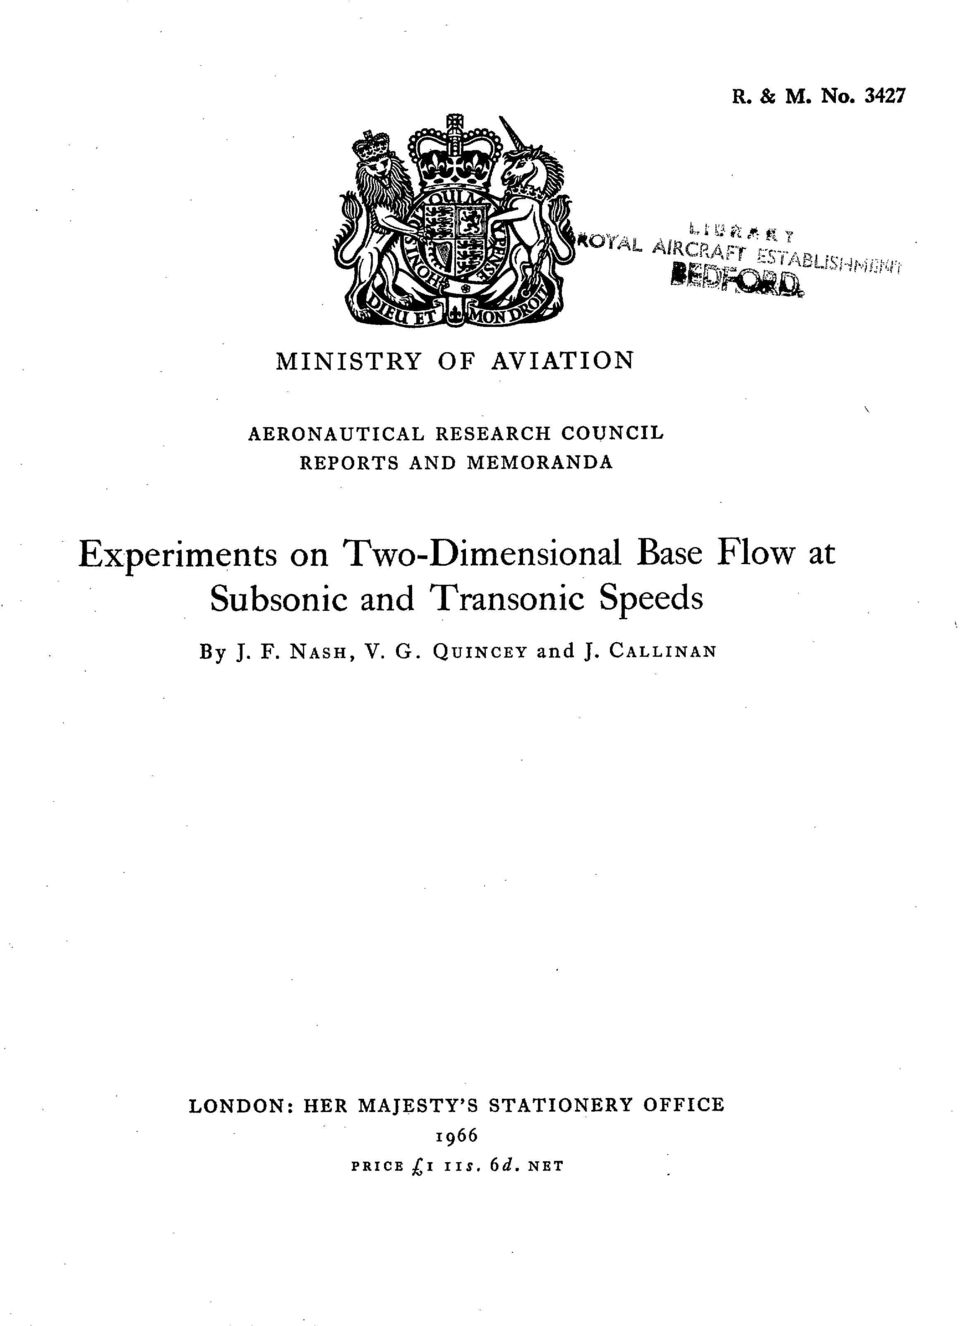 MEMORANDA Experiments on Two-Dimensional Base Subsonic and Transonic